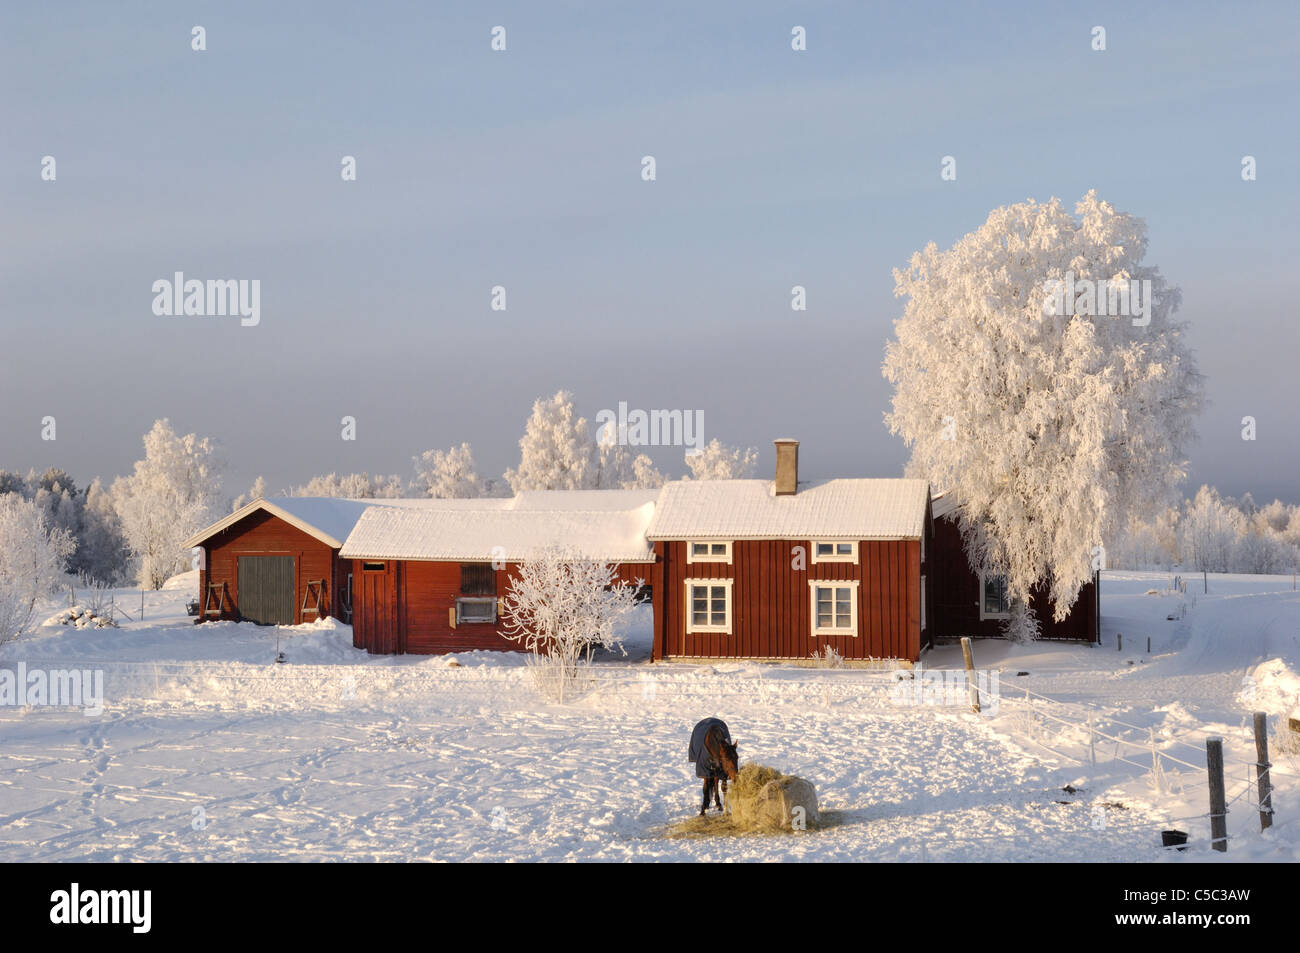 Wintry farm at the backyard of a red cottage in Dalarna - Stock Image